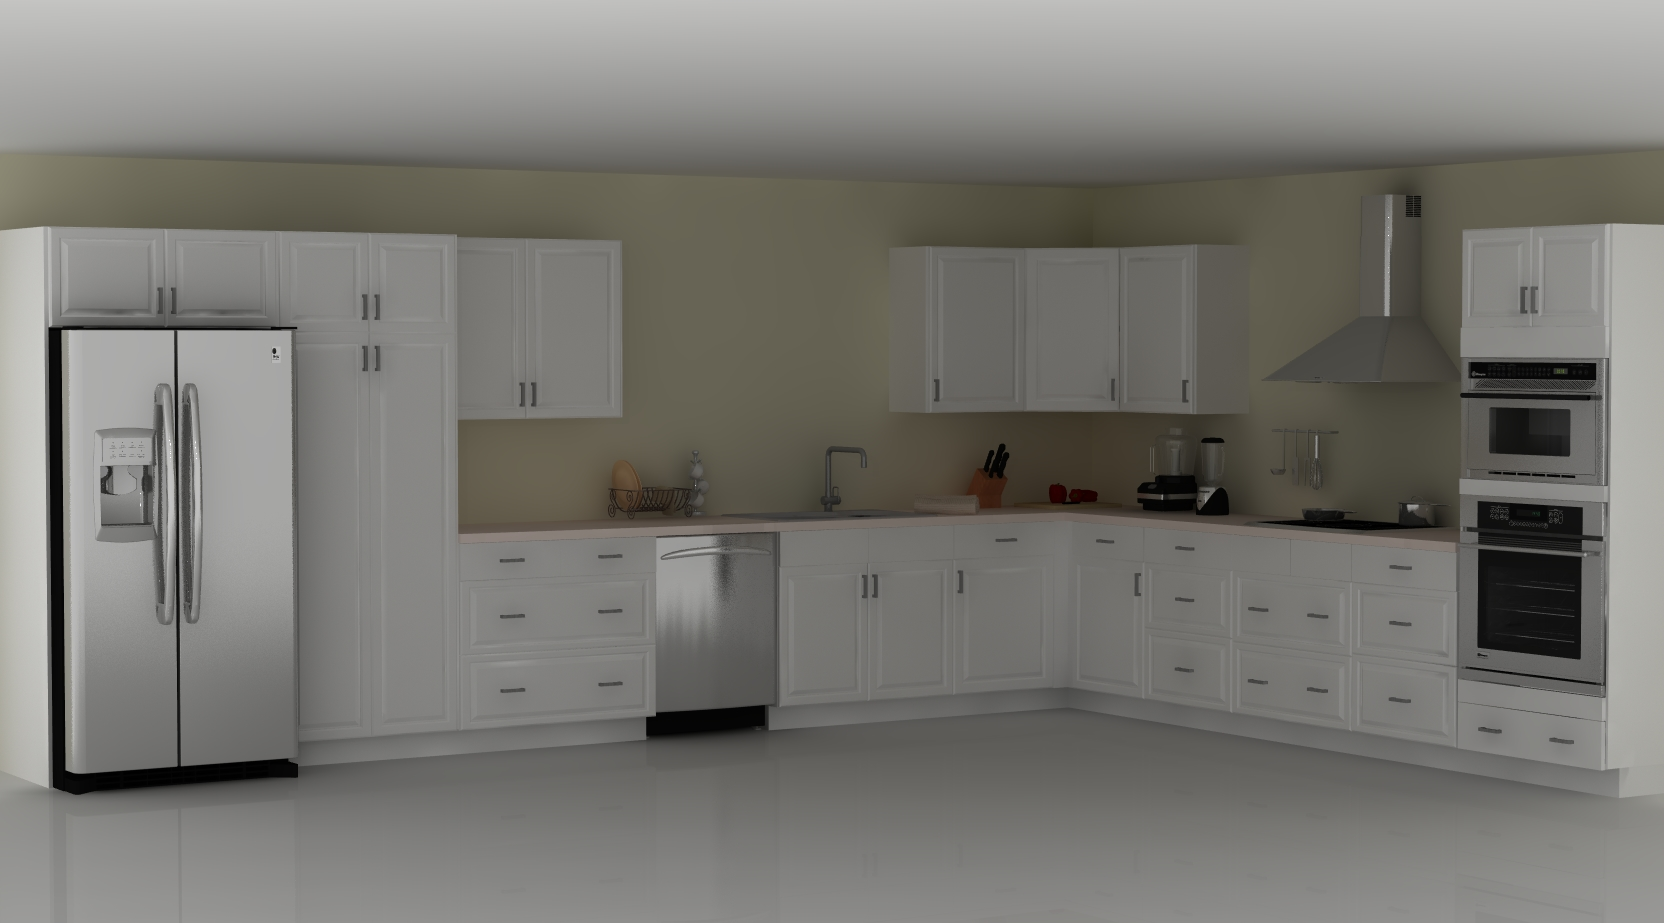 L Shaped Kitchen Design Ikea Kitchen Designer Tips Pros And Cons Of An L Shaped Layout